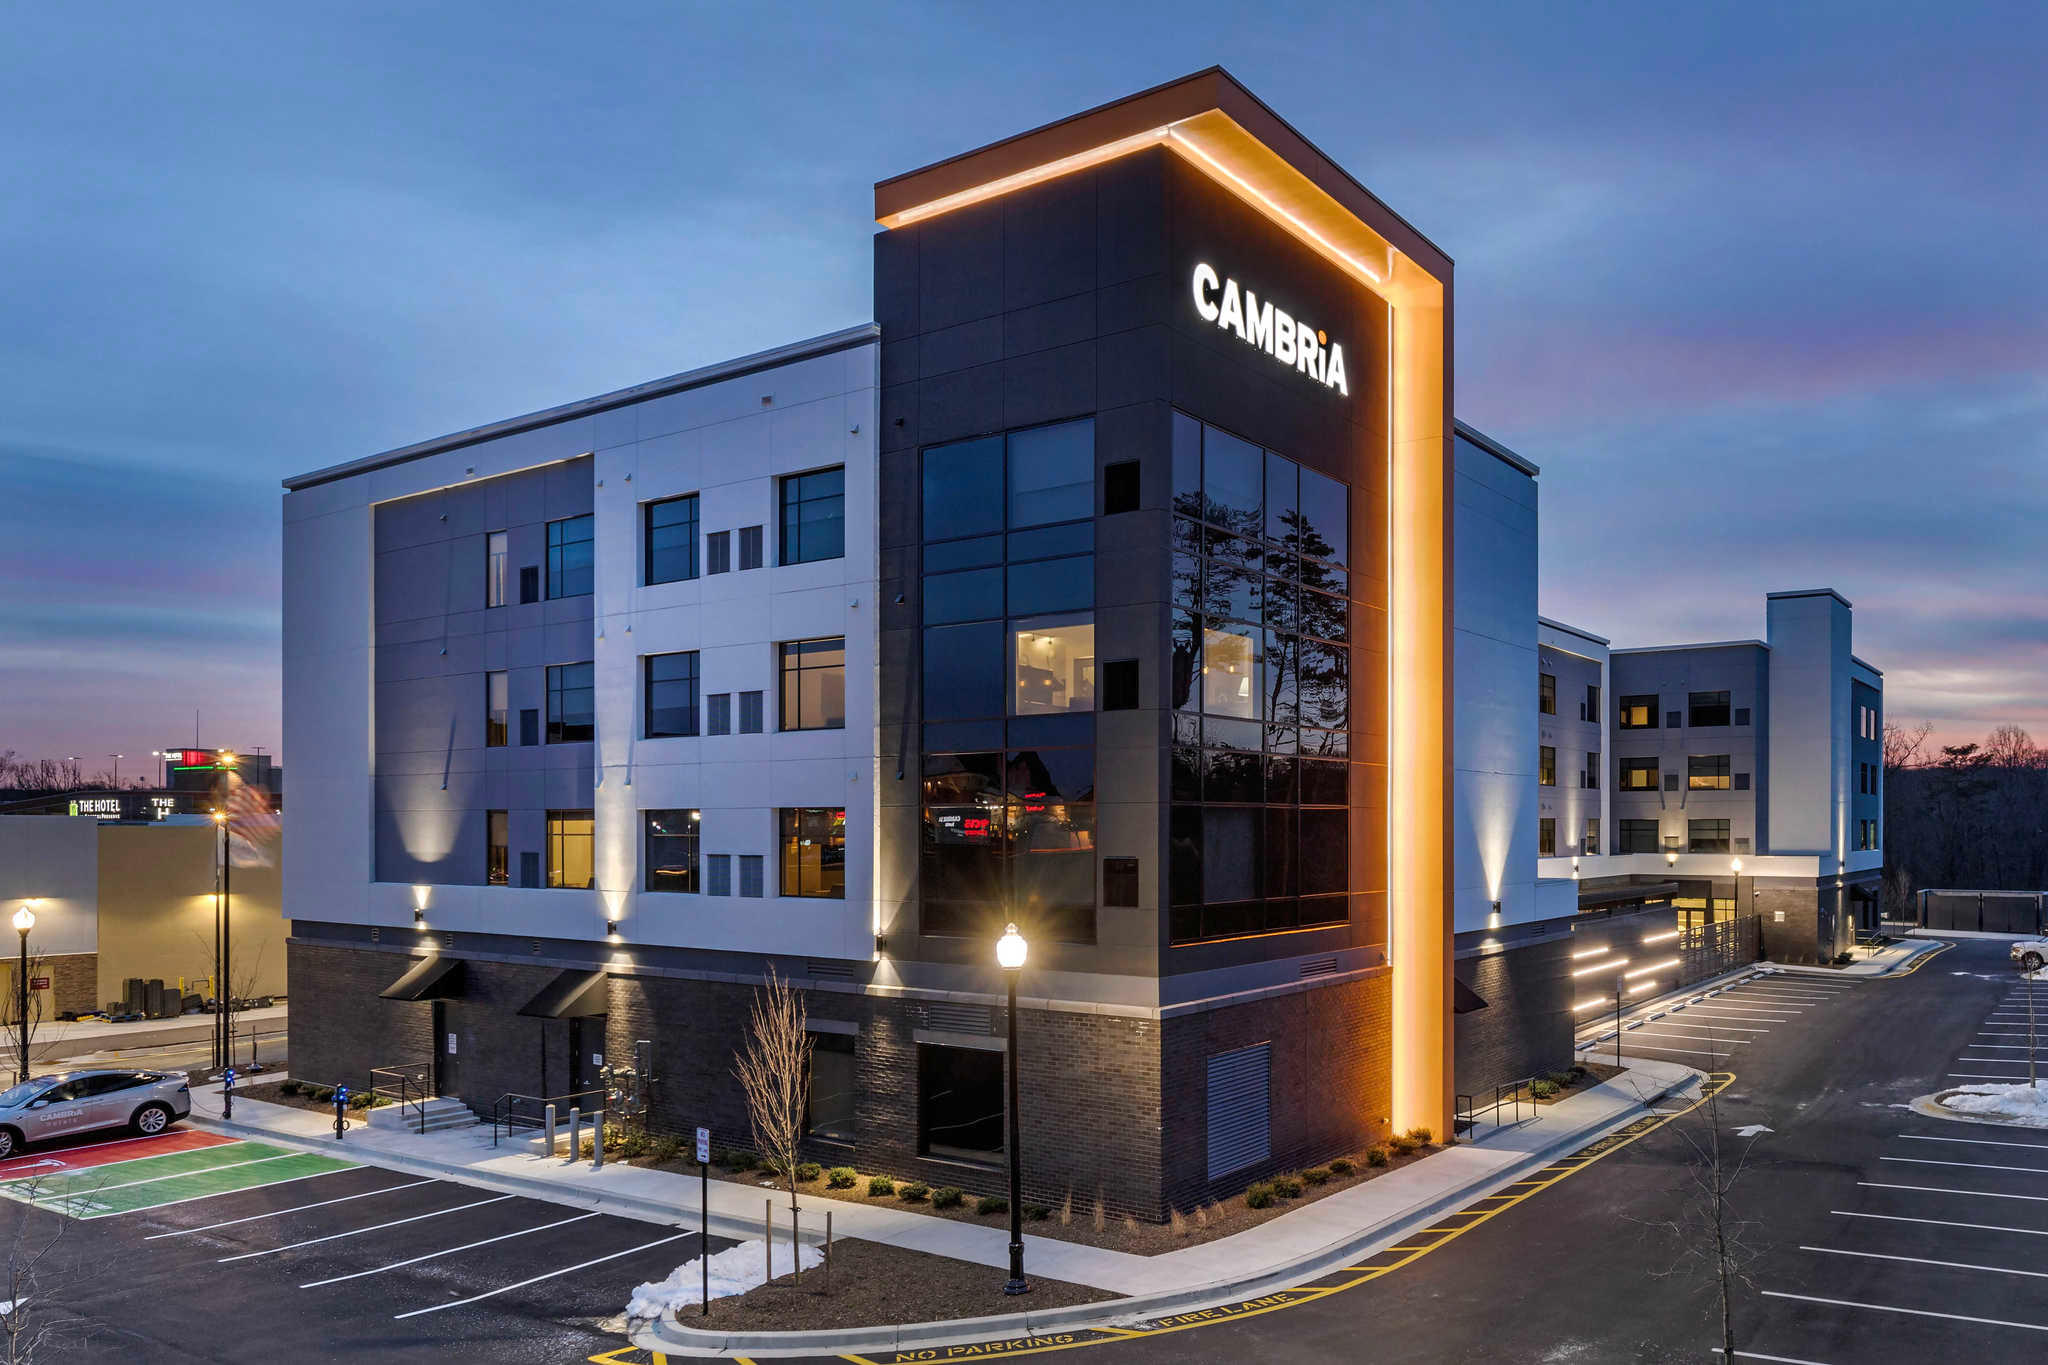 Cambria Hotel Arundel Mills-BWI Airport image 1